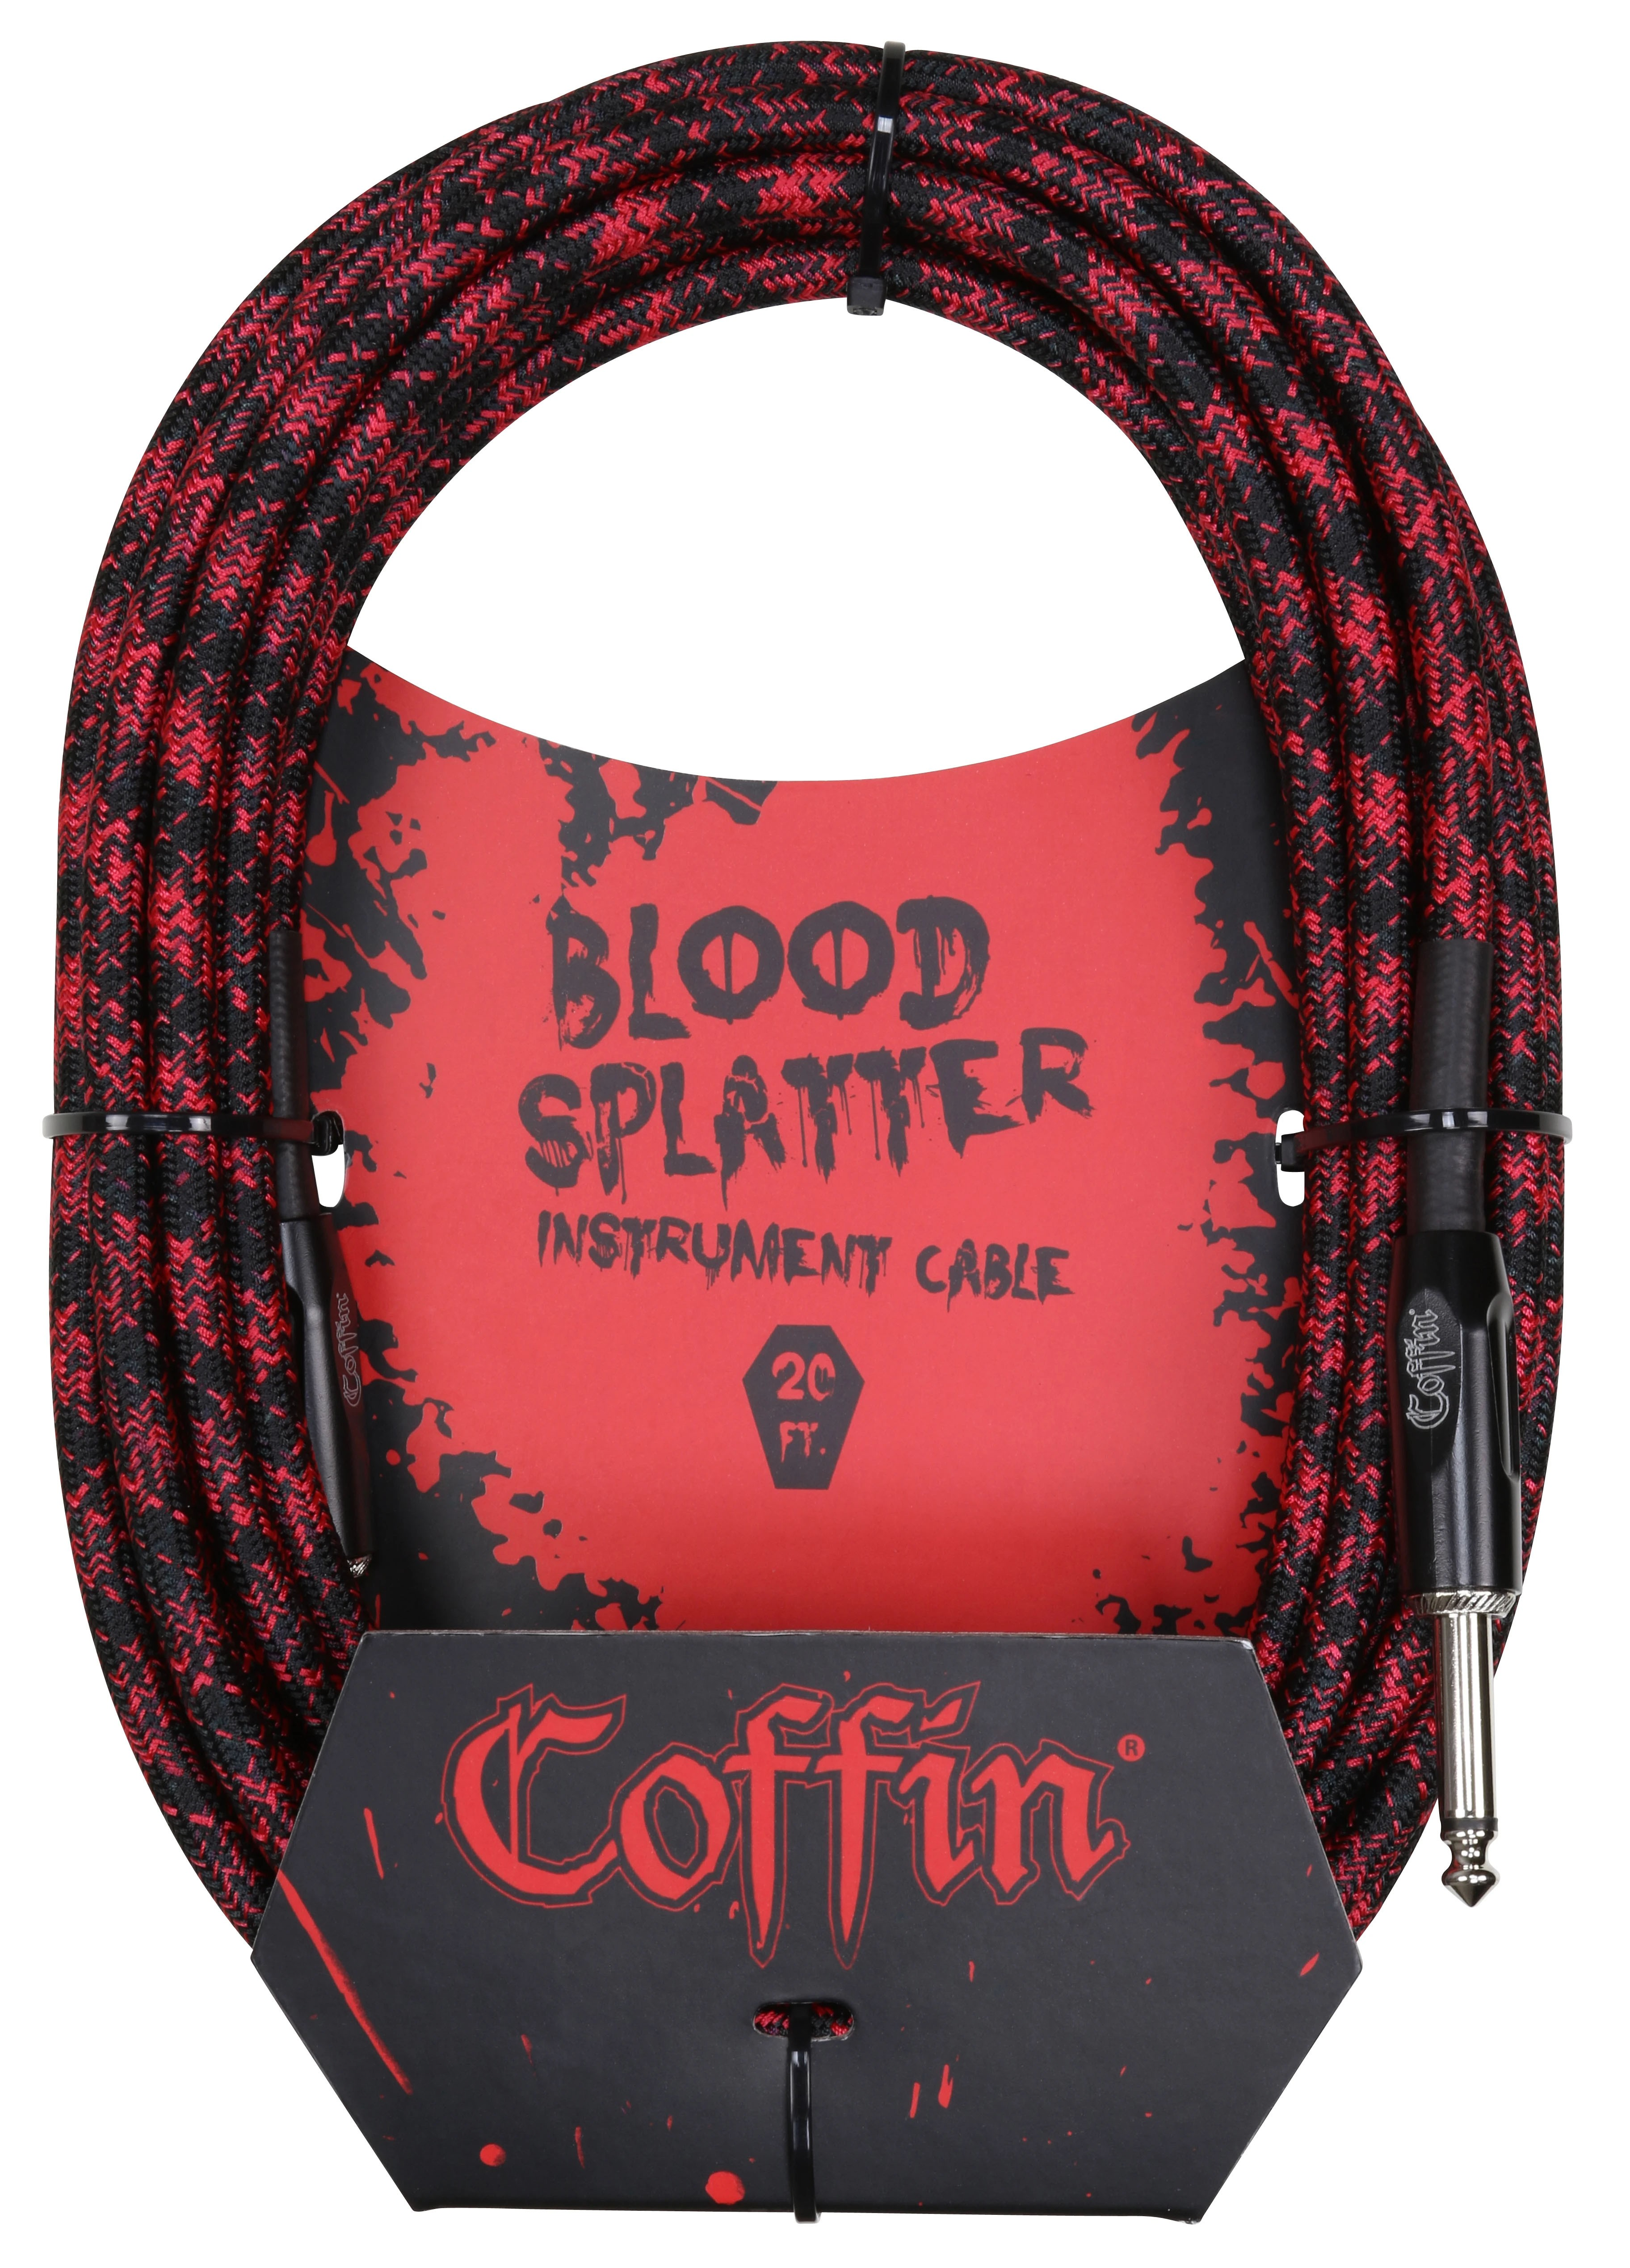 Coffin Case Bloodsplatter Instrument Cable 20ft - Straight